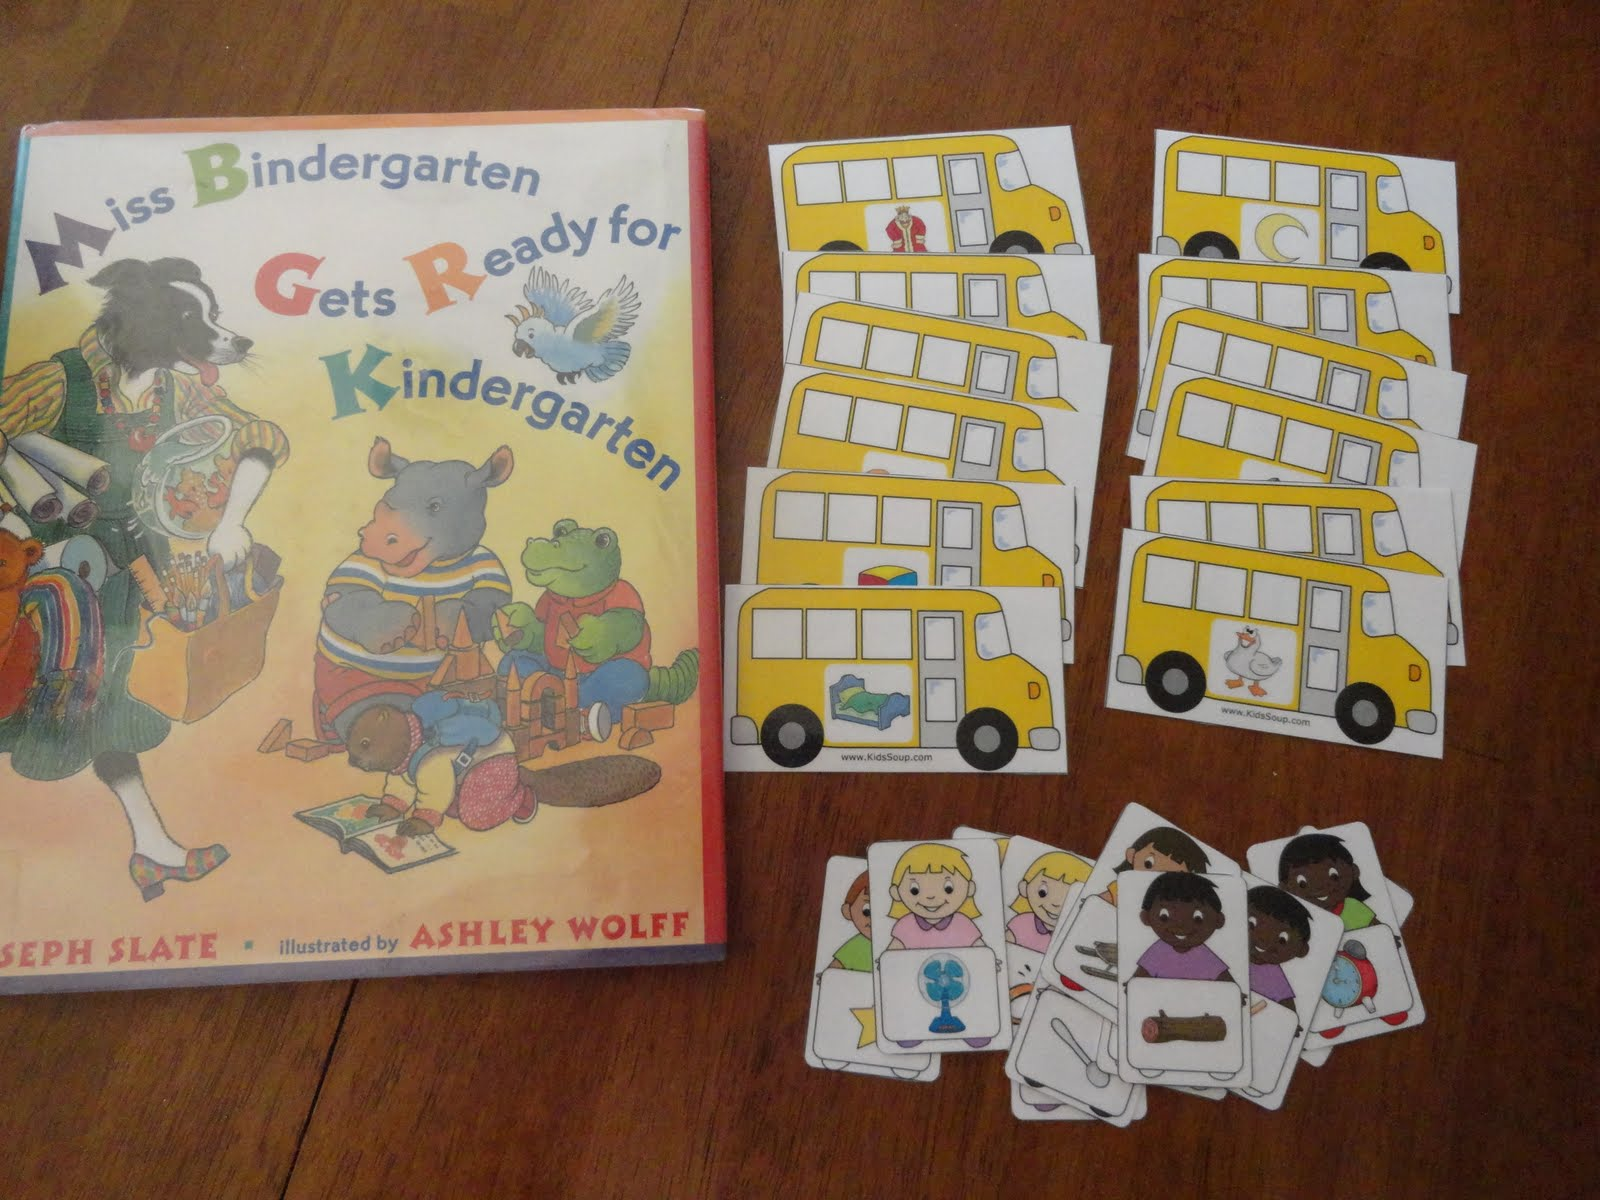 Izzie Mac And Me Storytime From A To Z Miss Bindergarten Gets Ready For Kindergarten